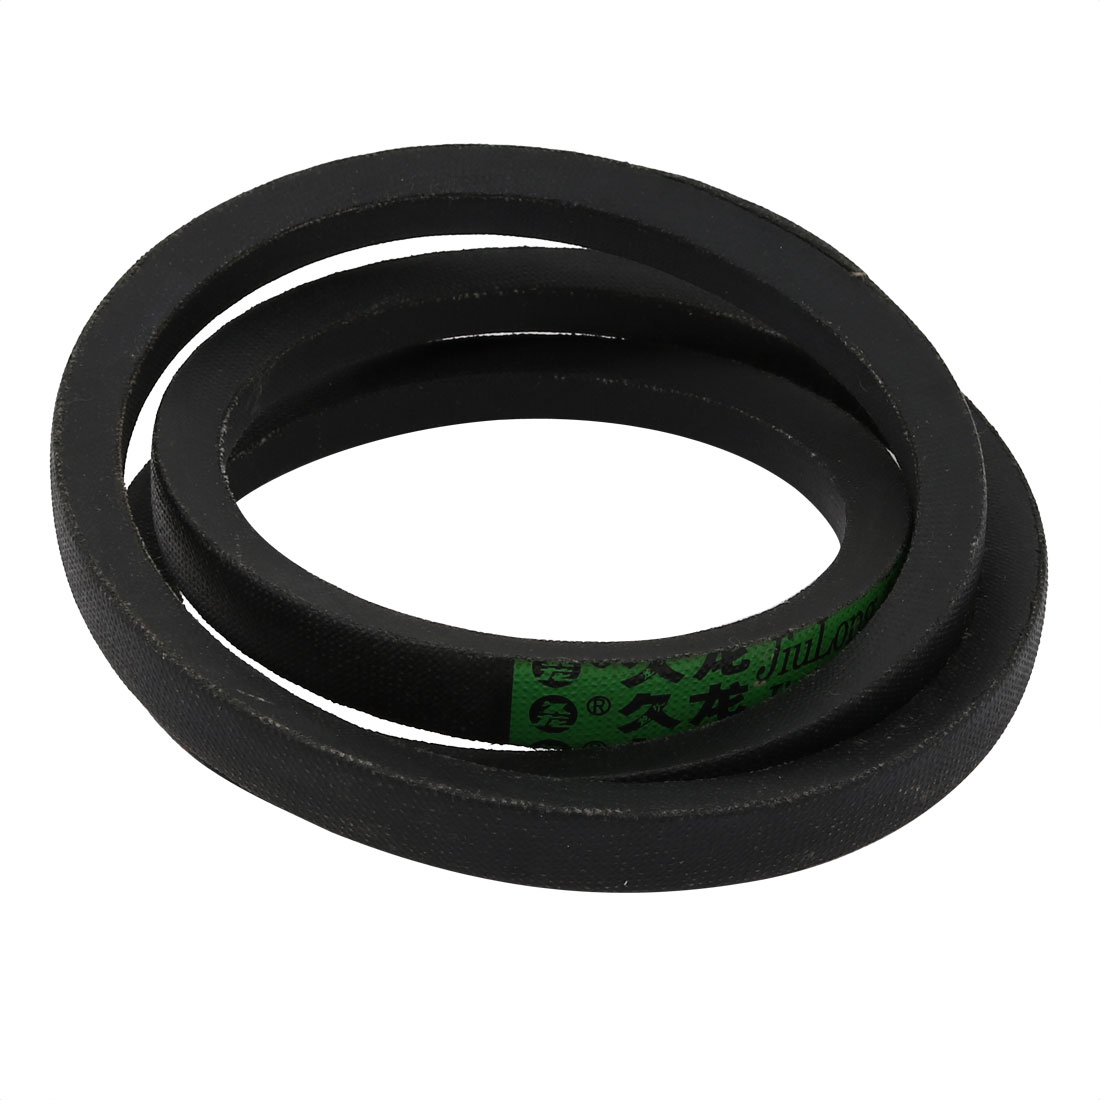 A1030 13mm Wide 8mm Thick Rubber Transmission Driving Belt V-Belt